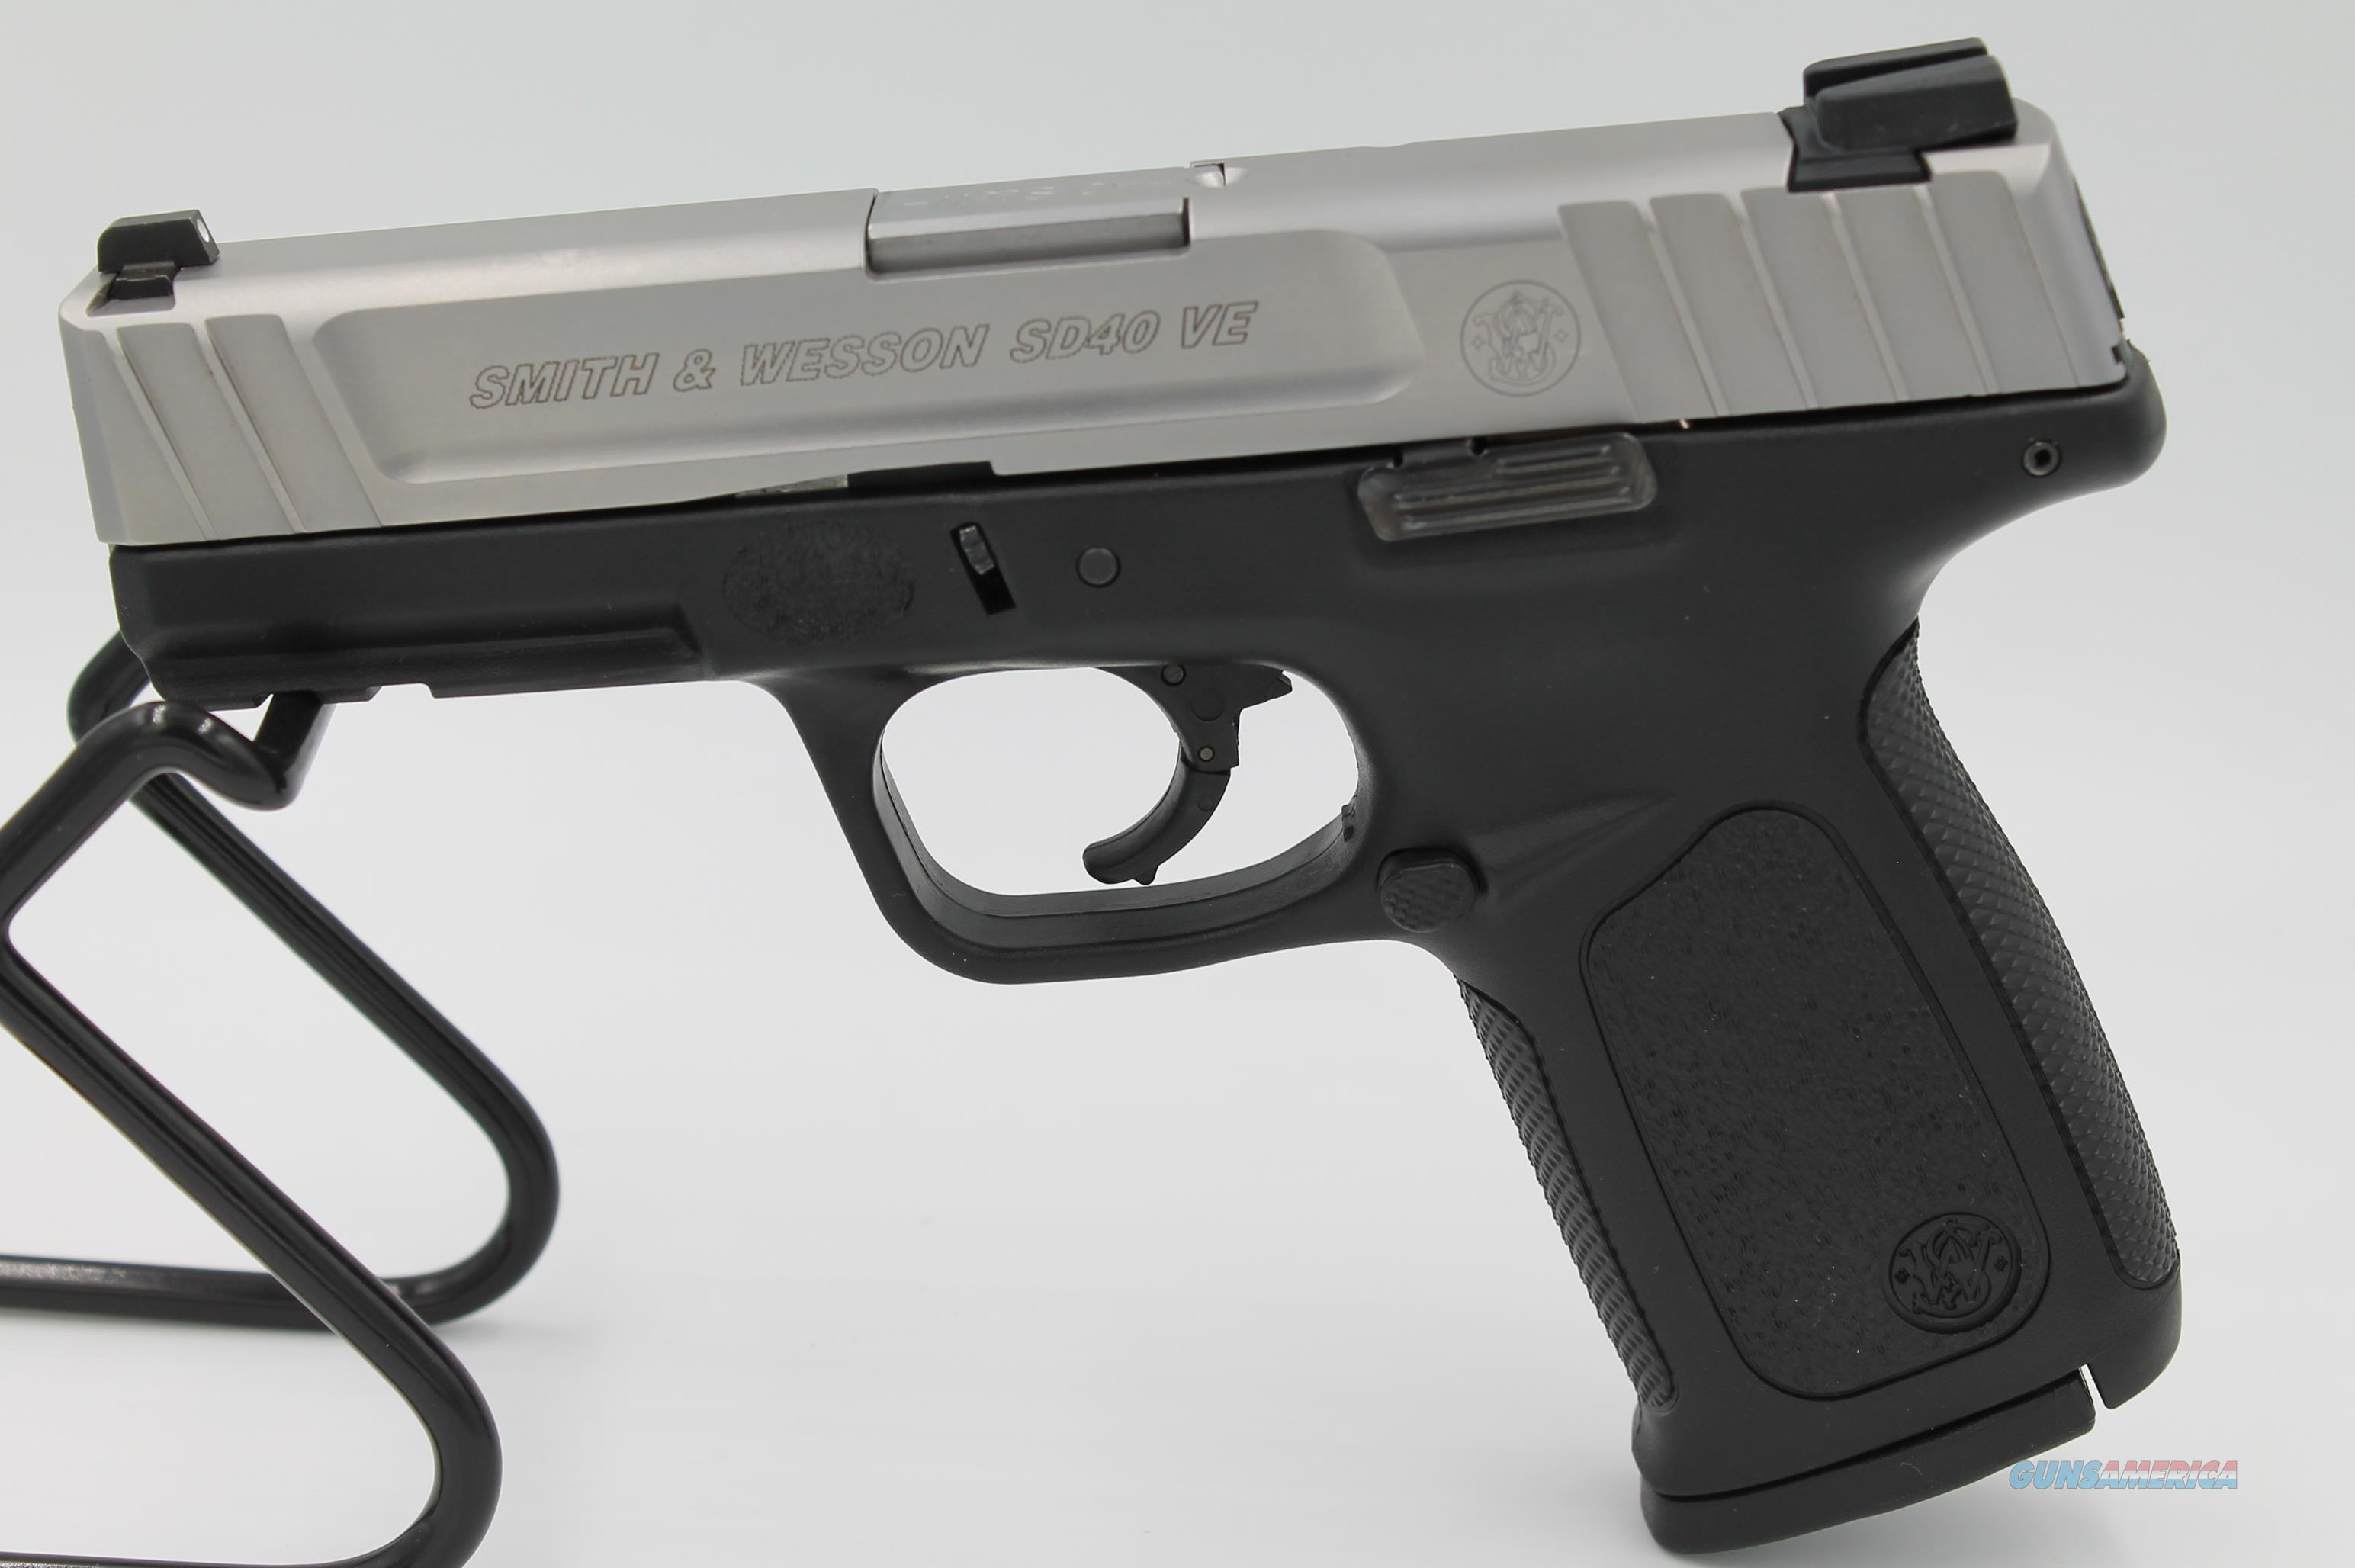 Smith & Wesson SD40VE .40 S&W + (2) 14rd Magazines  Guns > Pistols > Smith & Wesson Pistols - Autos > Polymer Frame